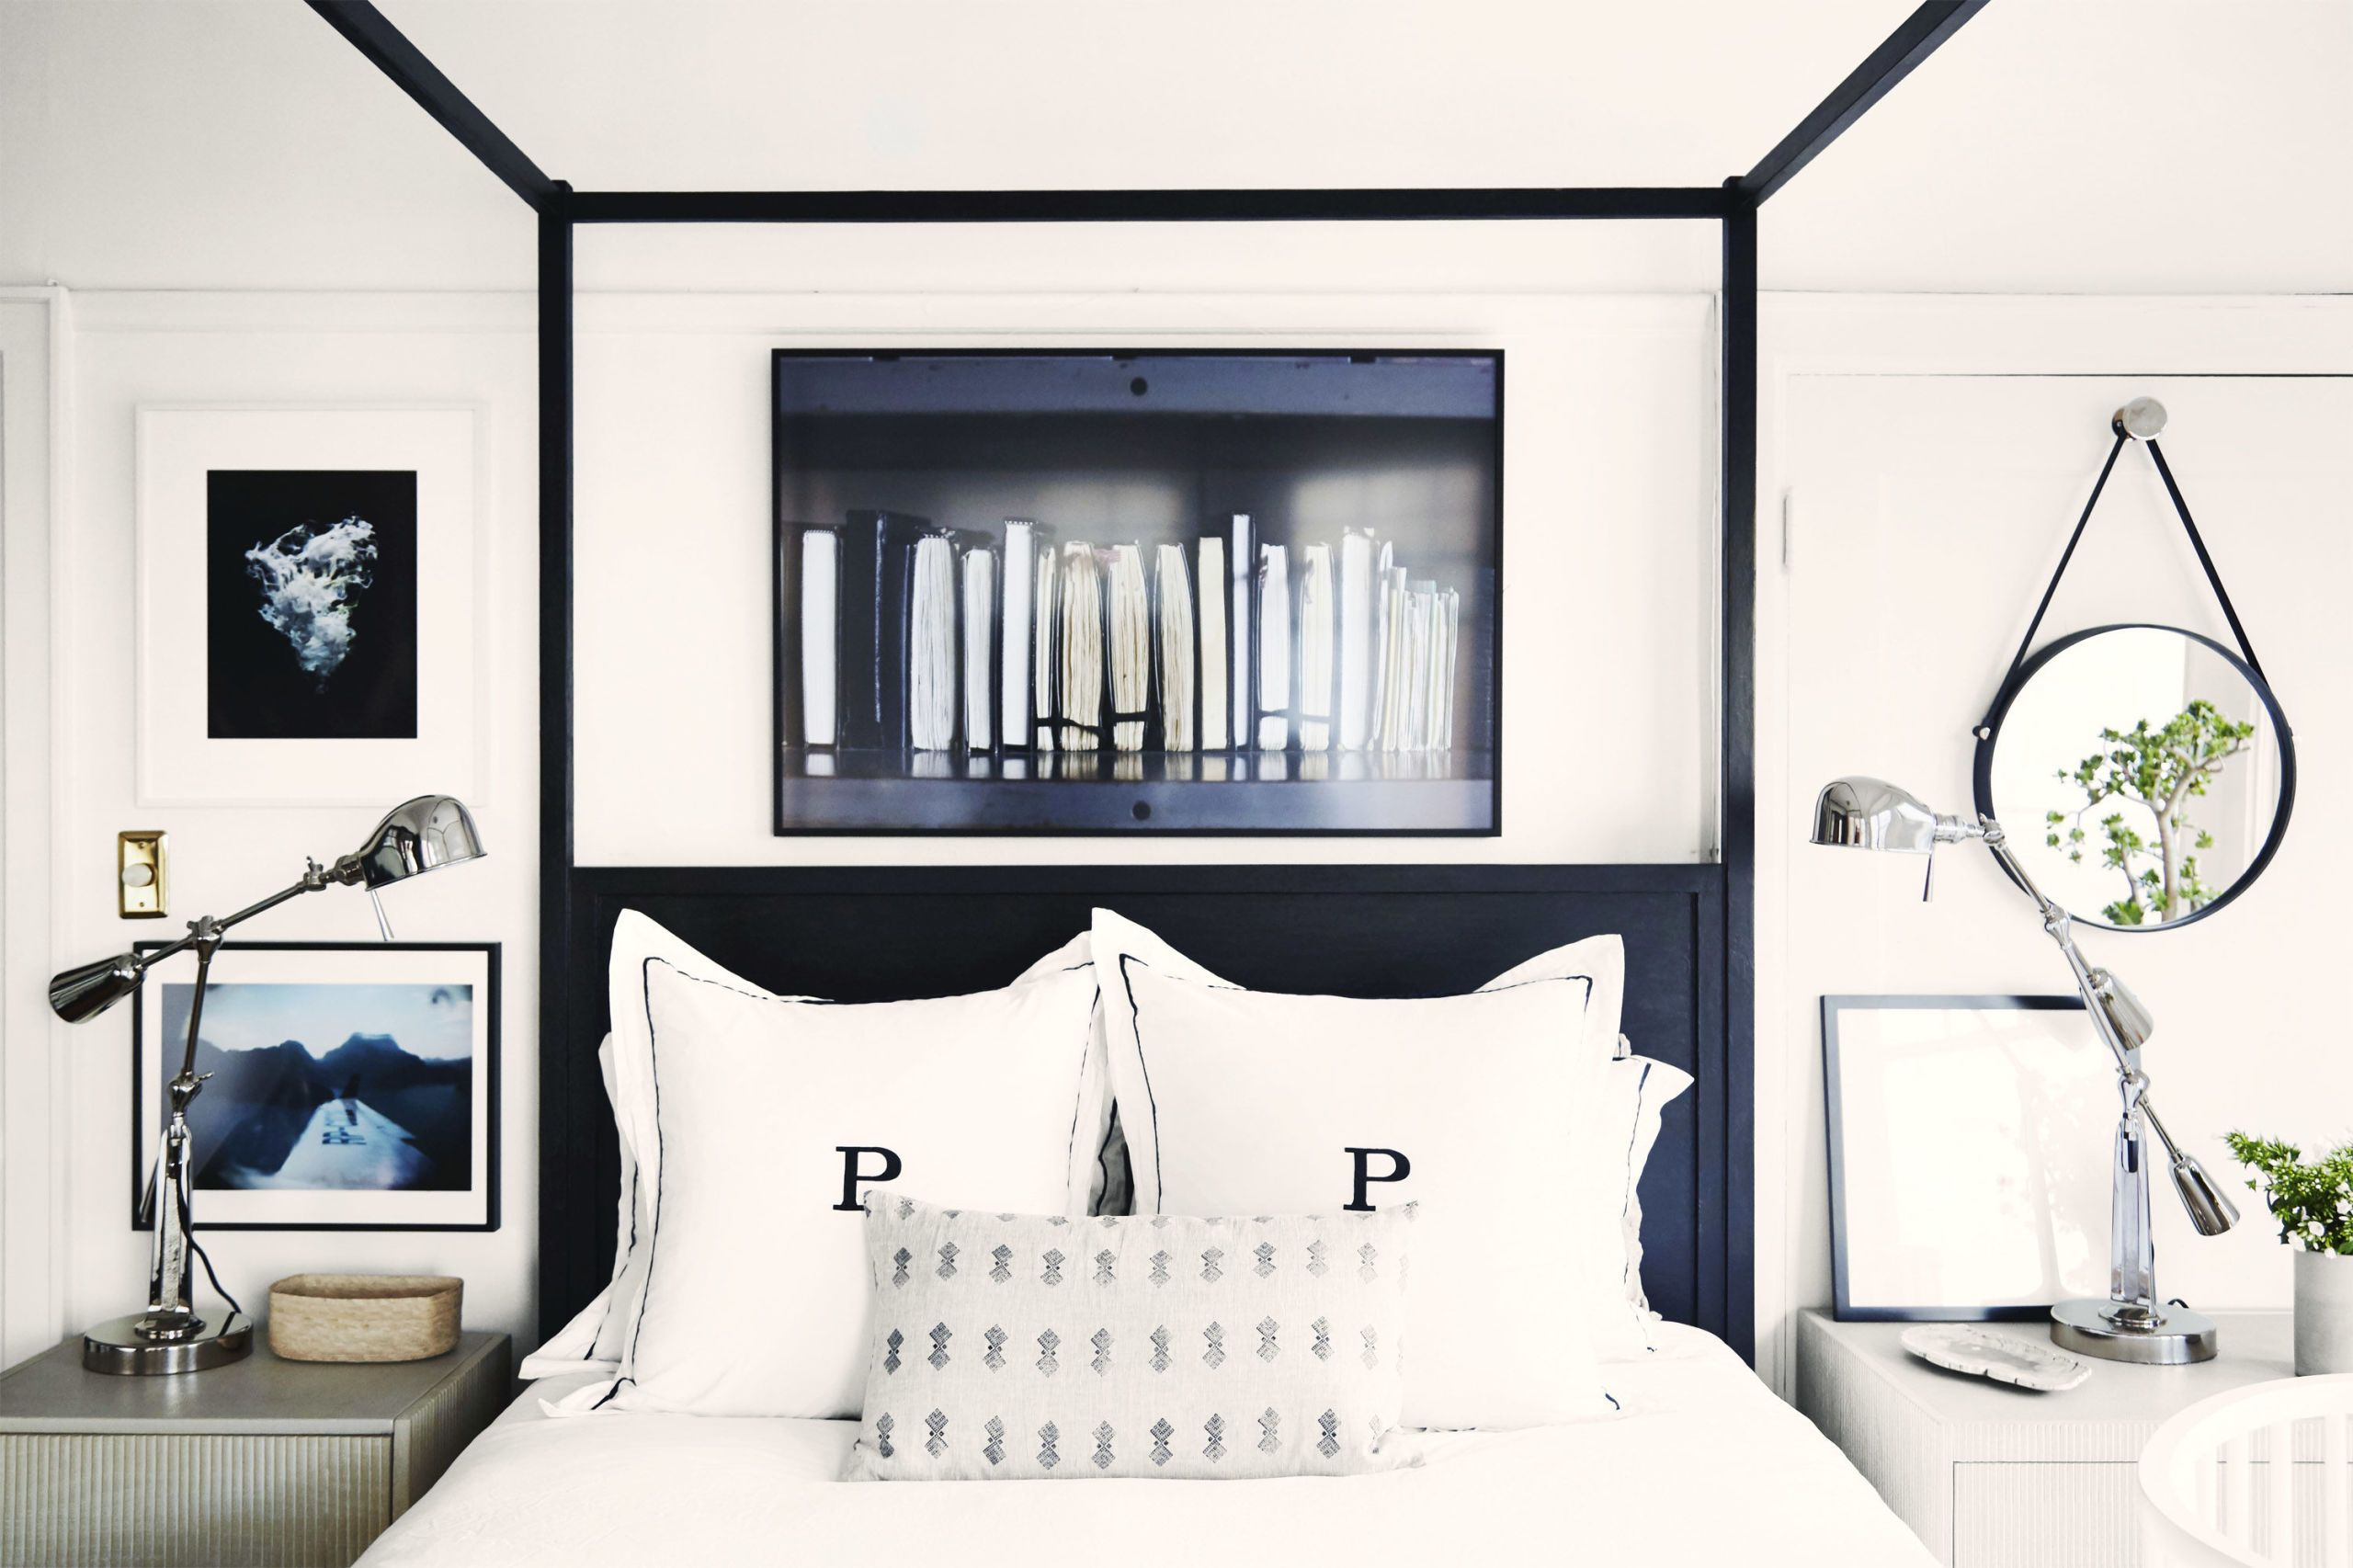 image & 65 Bedroom Decorating Ideas - How to Design a Master Bedroom